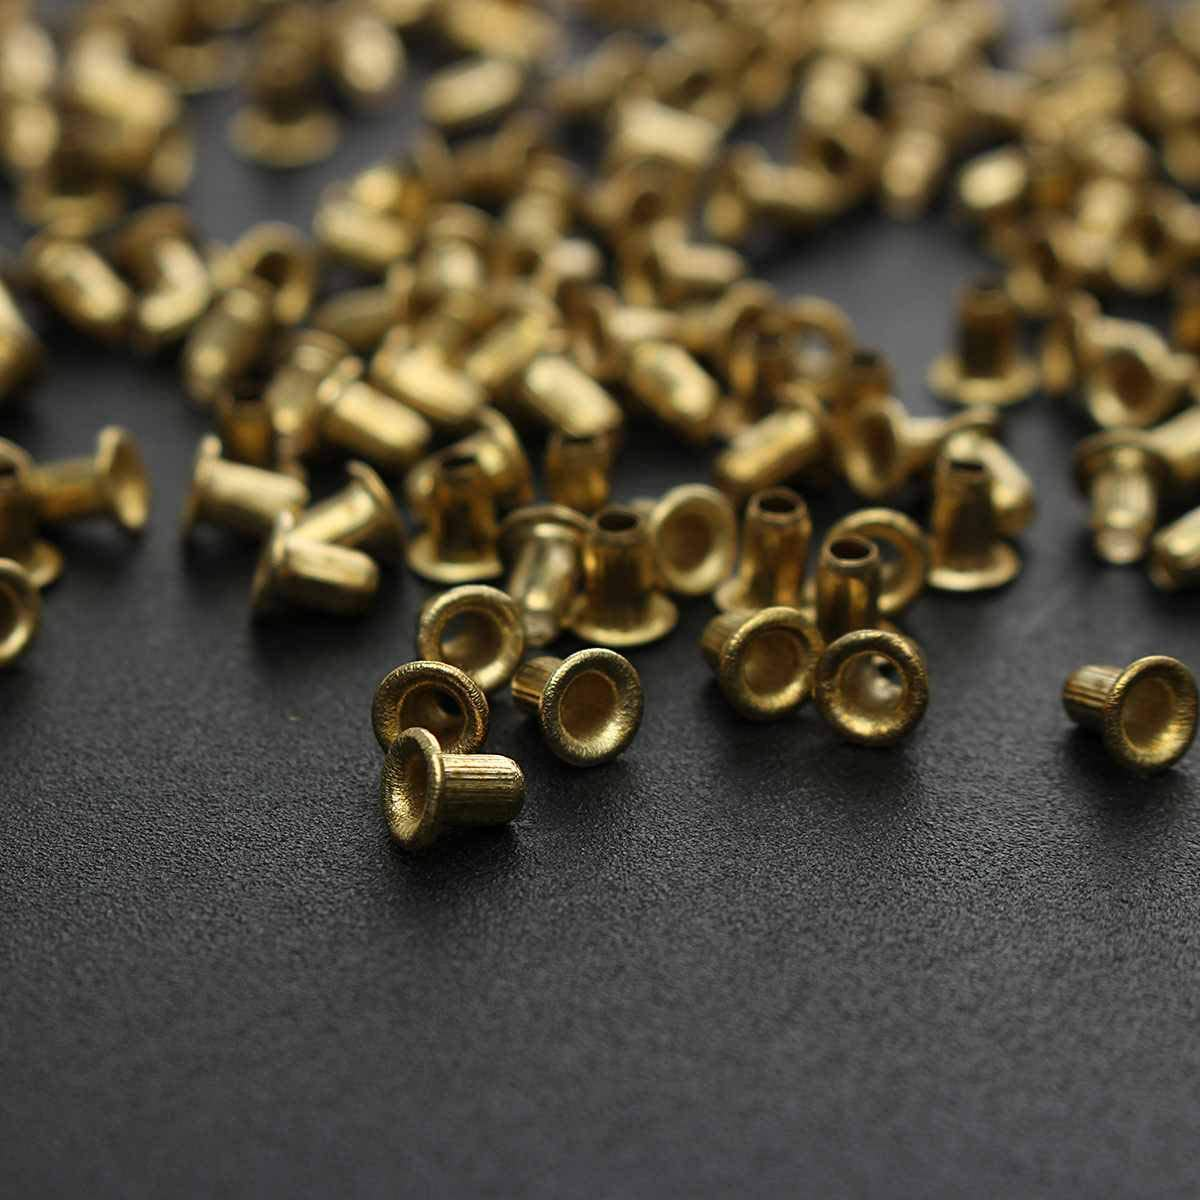 1400Pcs Brass Hole Eyelets Beehive Box Wiring Support Beekeeper Nest Threa Y7B9